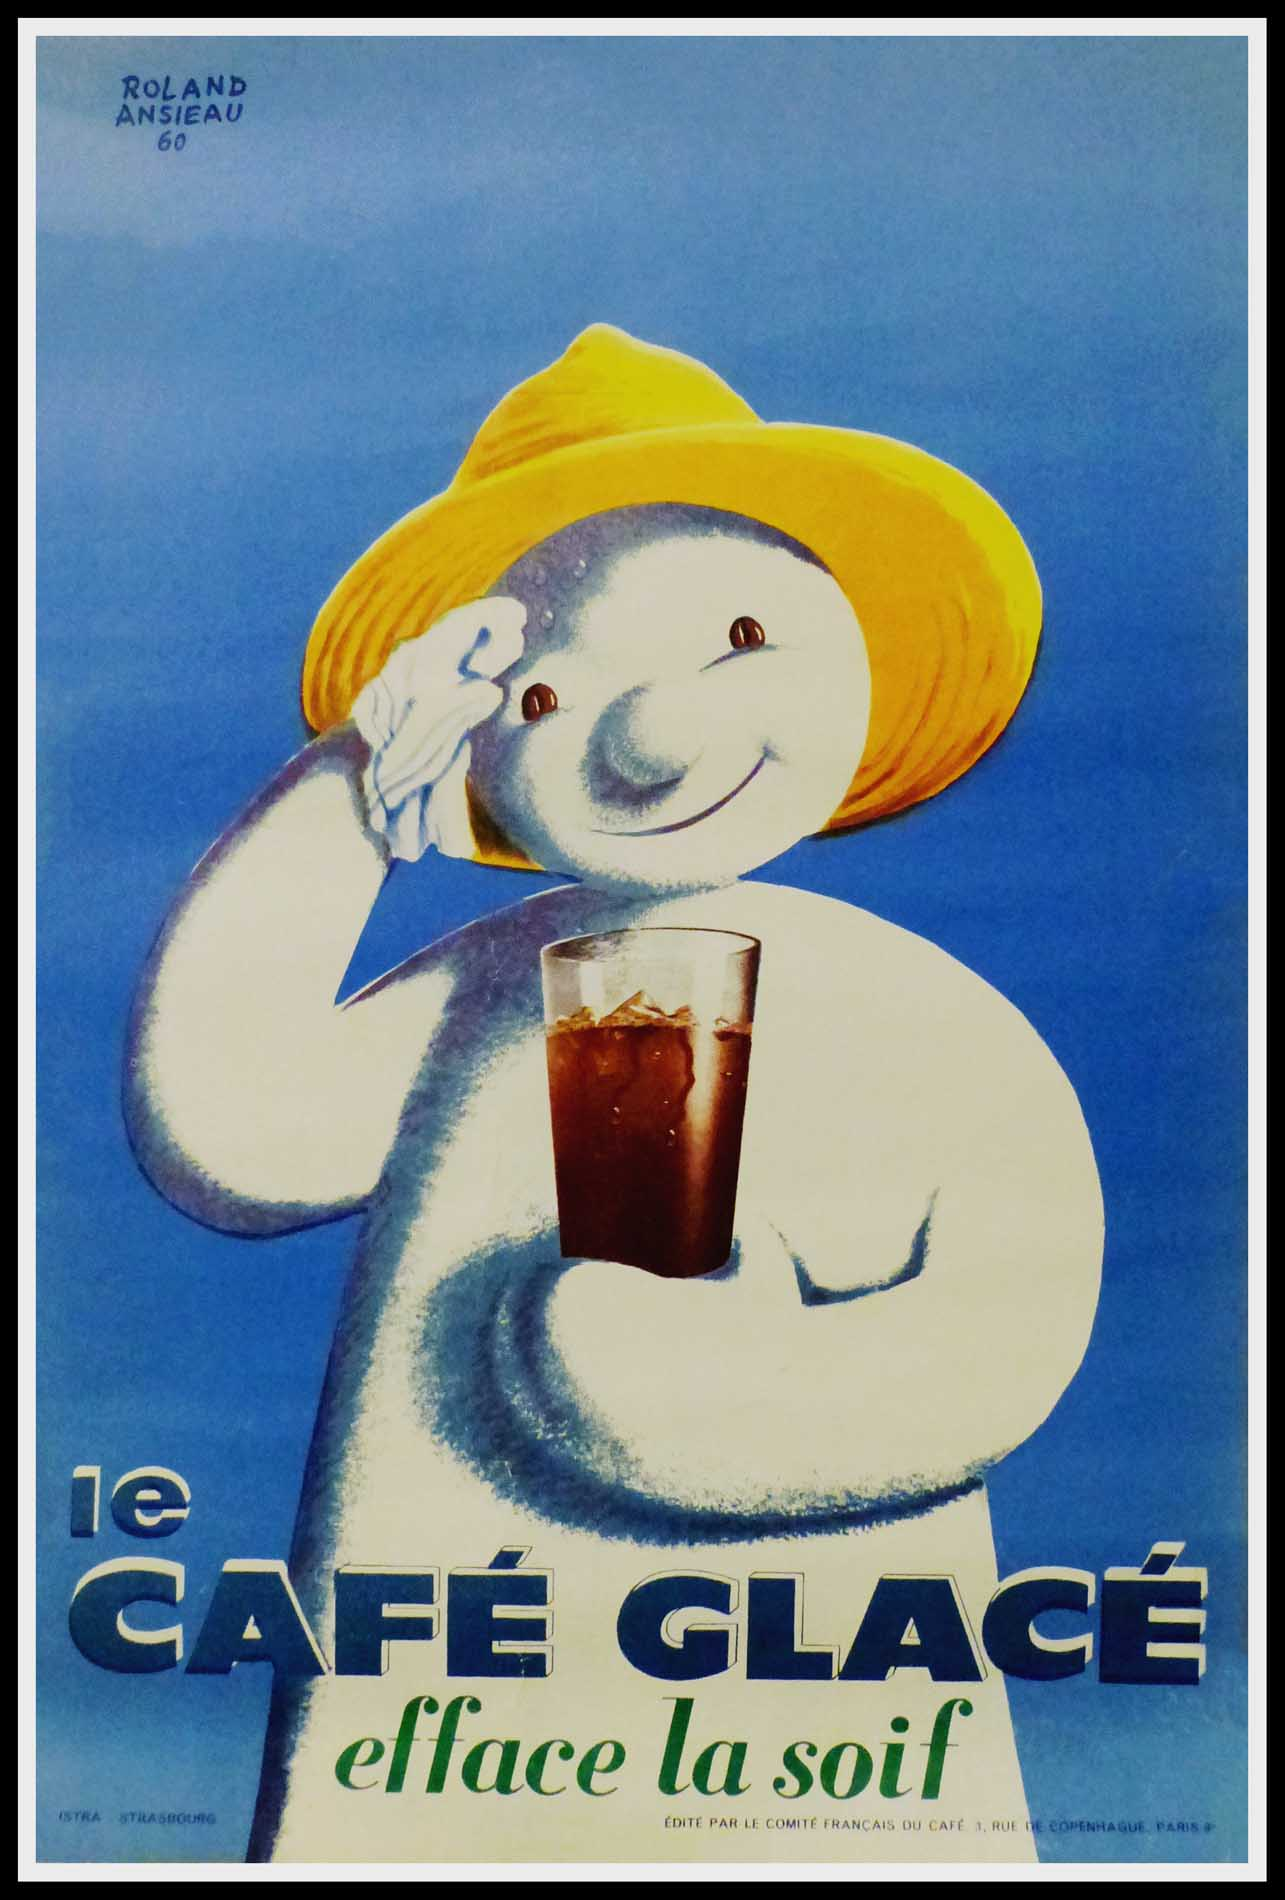 "(alt=""Original vintage poster Le Café Efface La Soif 1960, signed in the plate by Roland Ansieu and printed by Istra, Strasbourg"")"